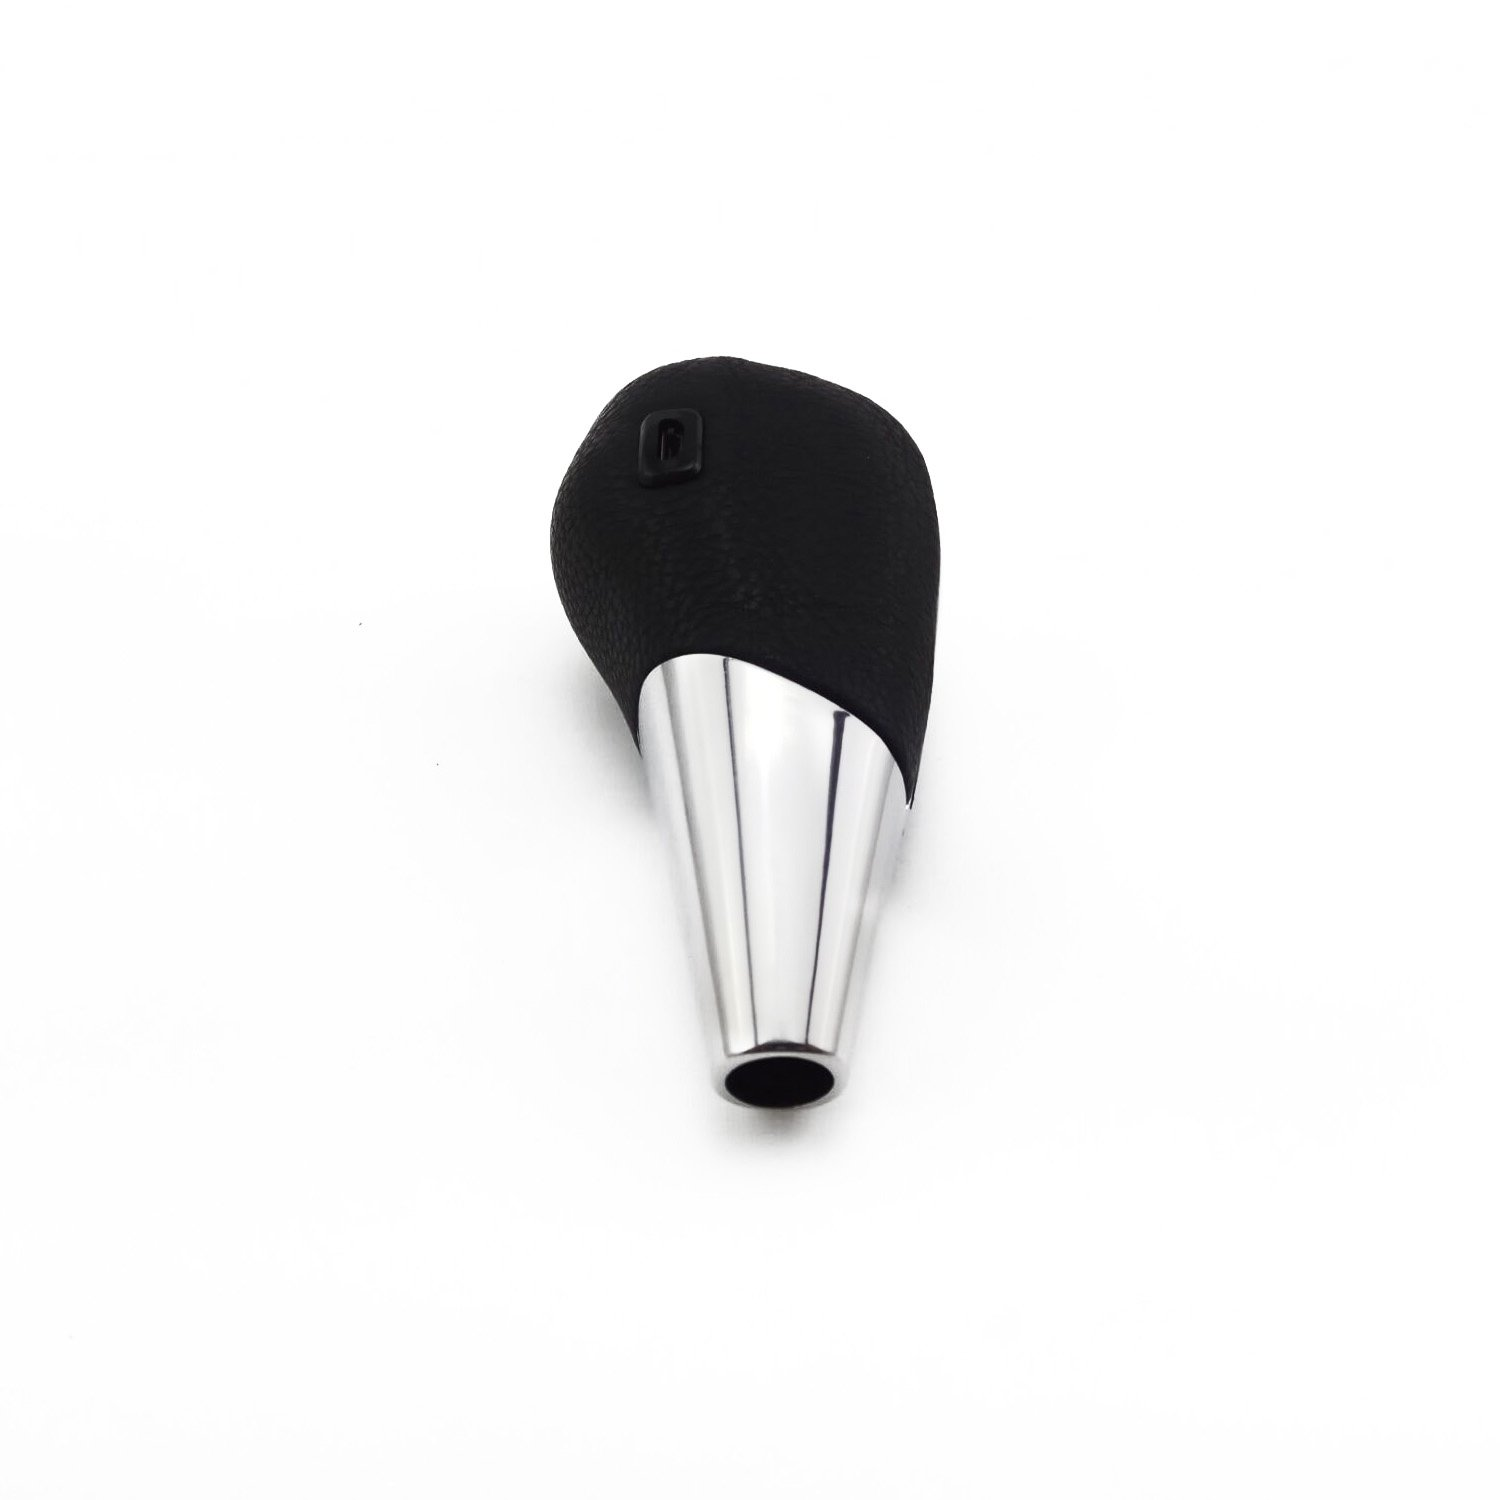 7 Color TESWNE Black Leather LED Touch Activated Shift Knob for Toyota//Scion Honda//Acura Nissan//Mazda Lexus